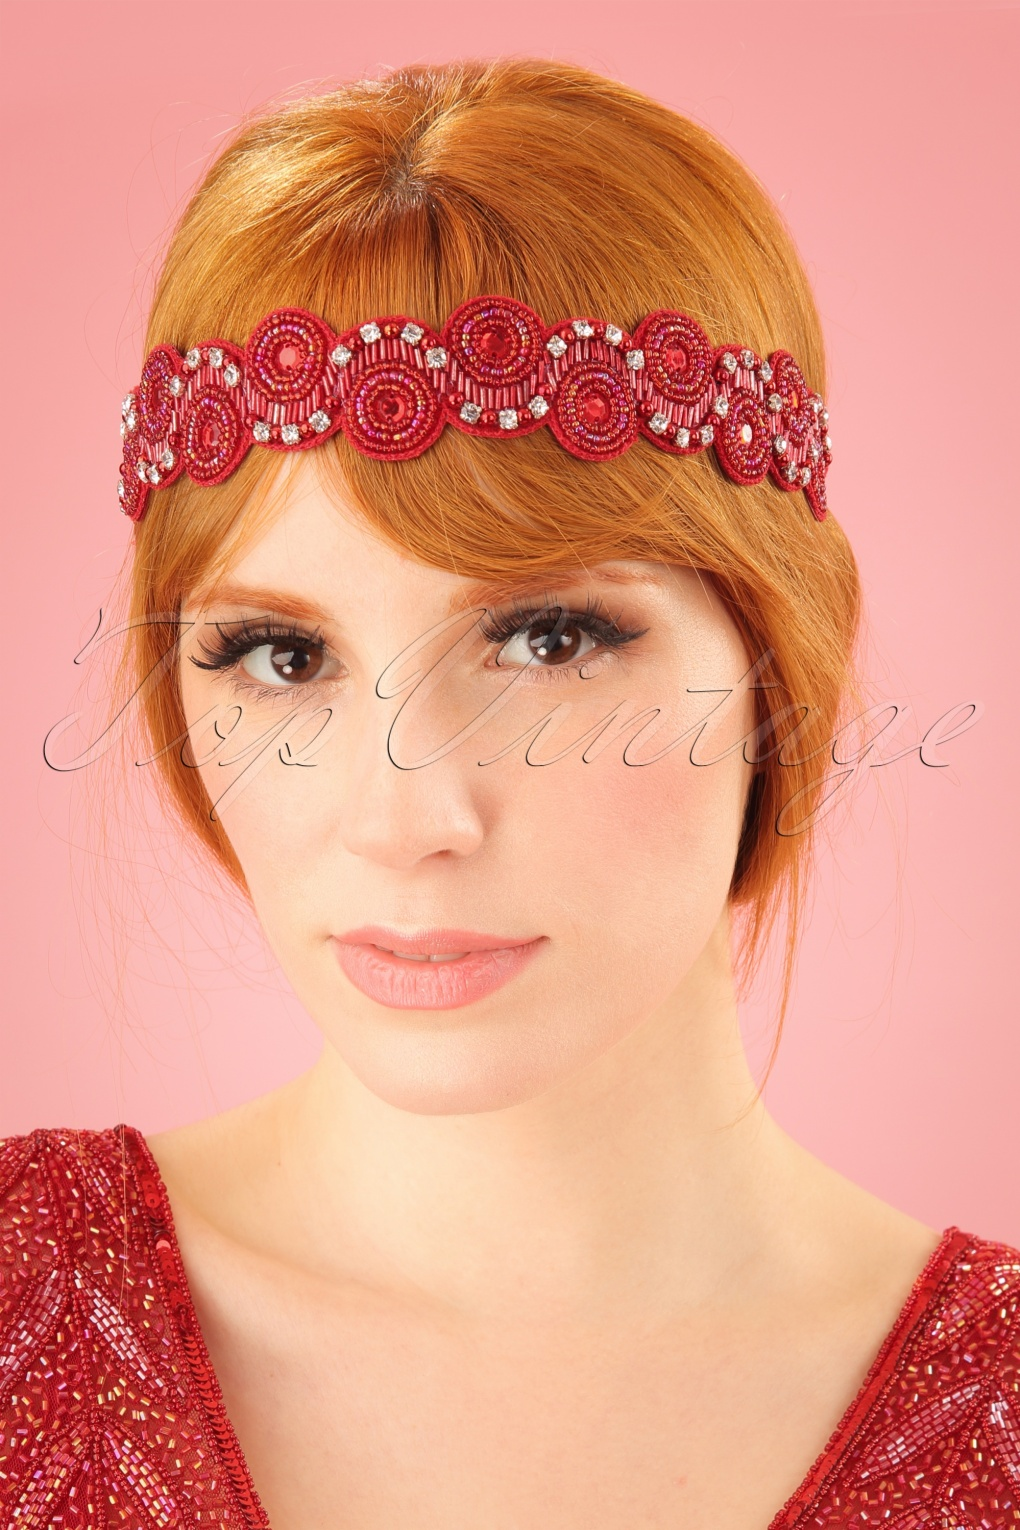 Vintage Hair Accessories: Combs, Headbands, Flowers, Scarf, Wigs 20s Eliza Embellished Headband in Red £20.31 AT vintagedancer.com